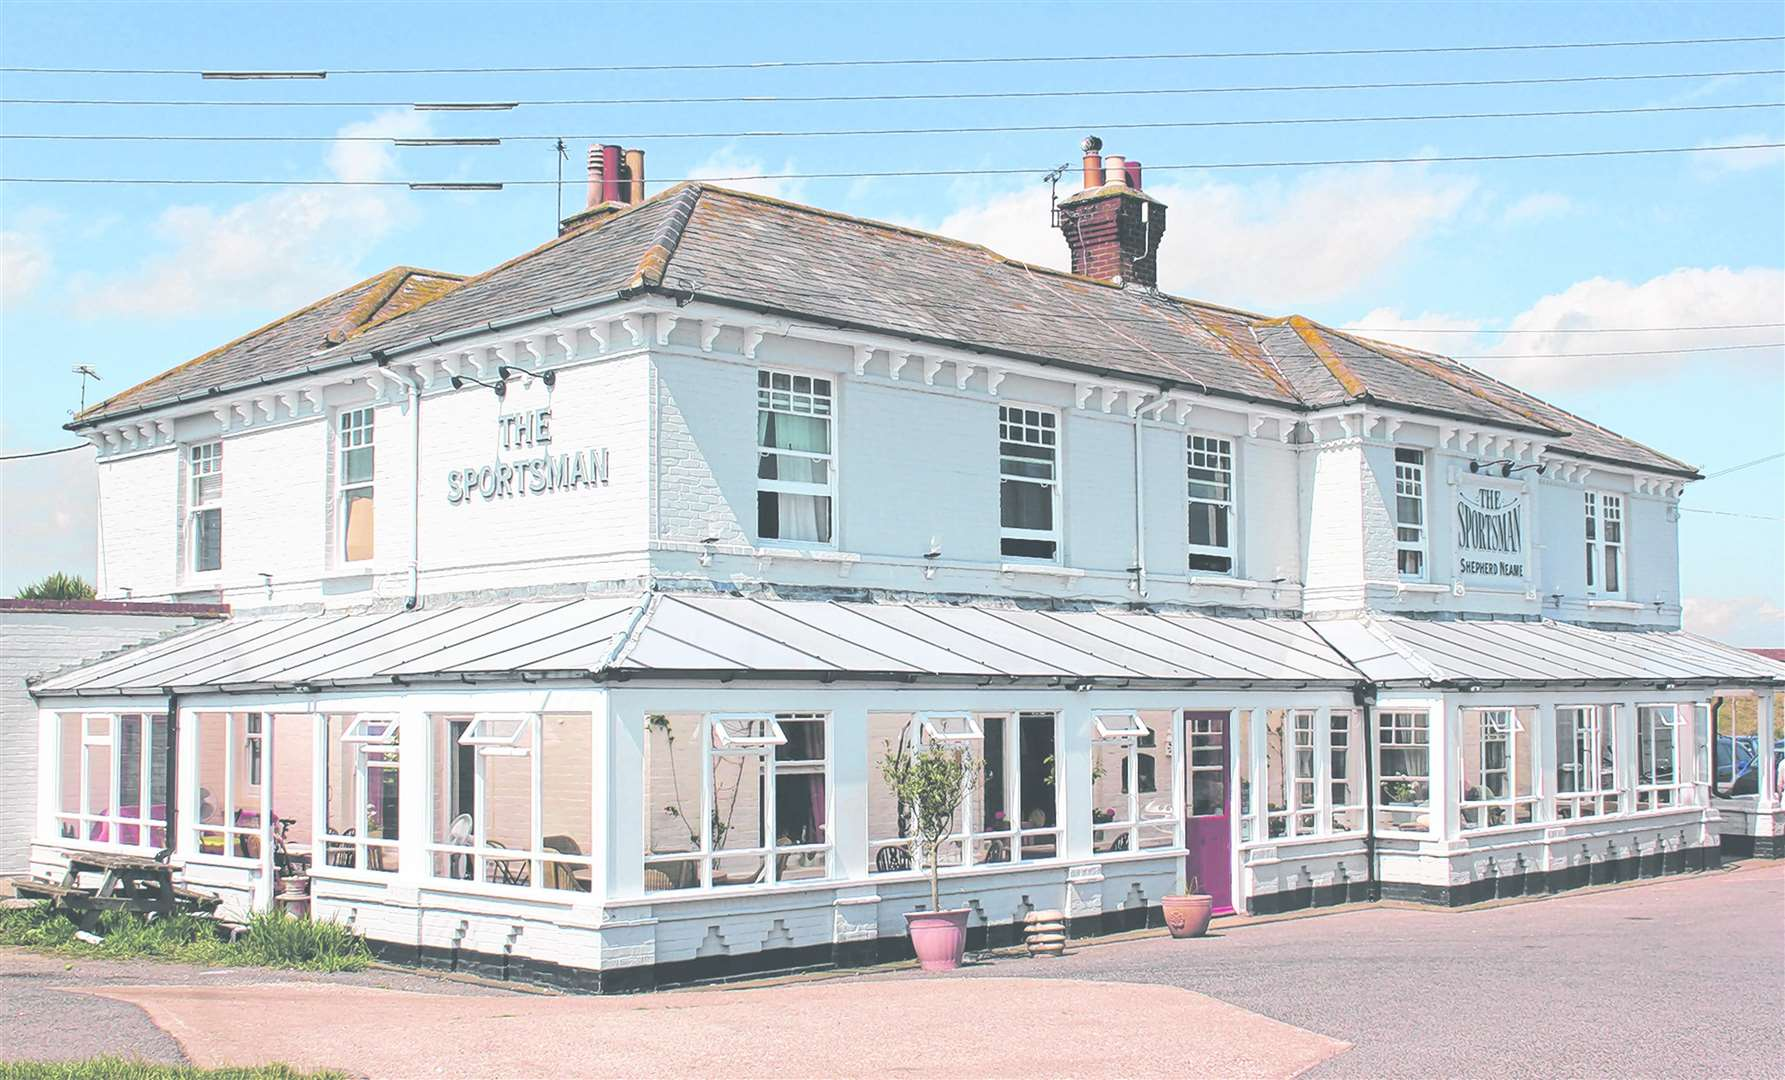 The Sportsman in Whitstable